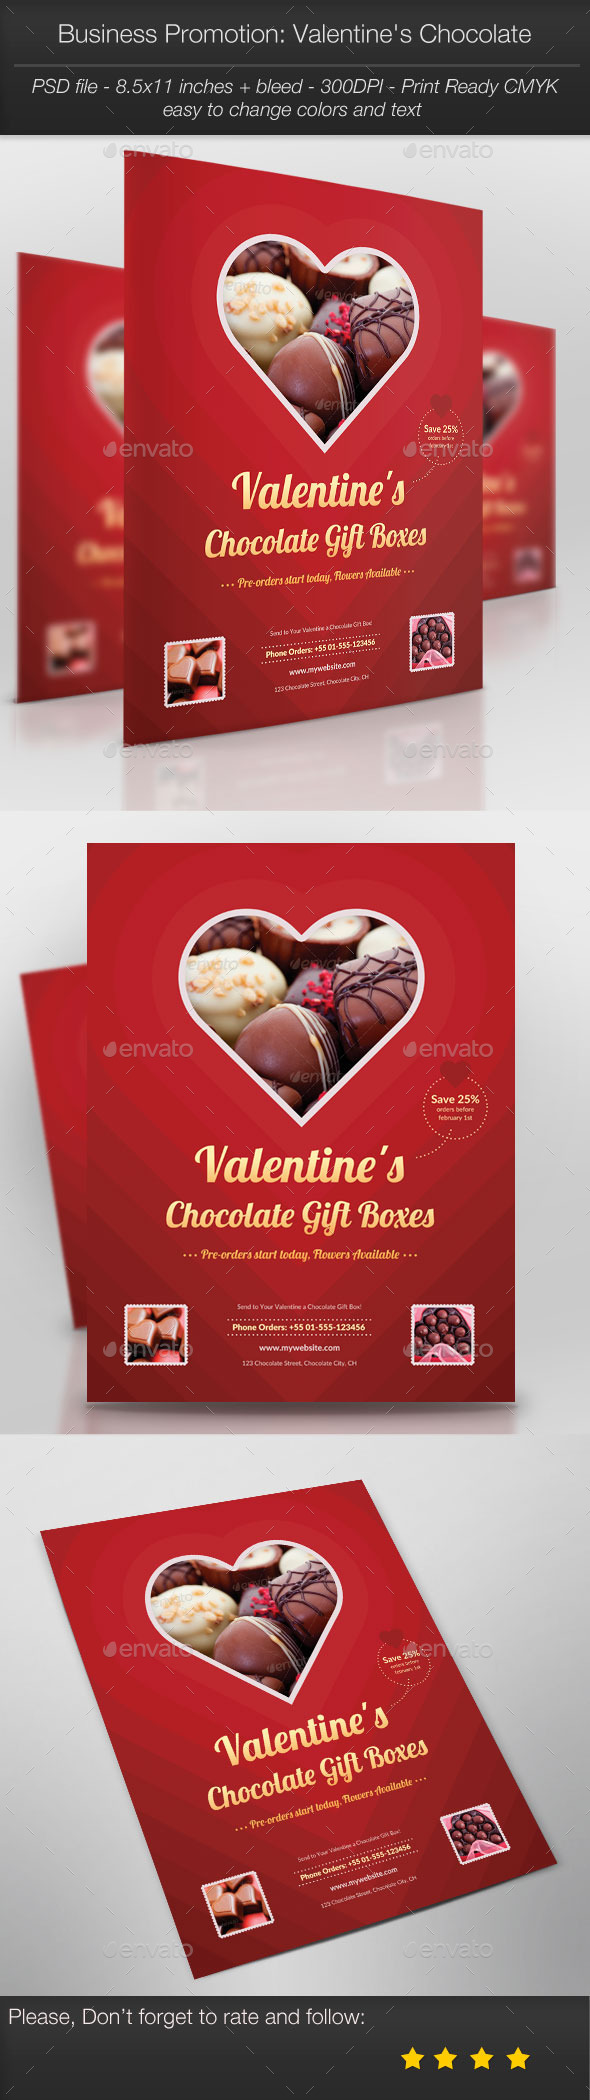 GraphicRiver Business Promotion Valentine s Chocolate 10145373